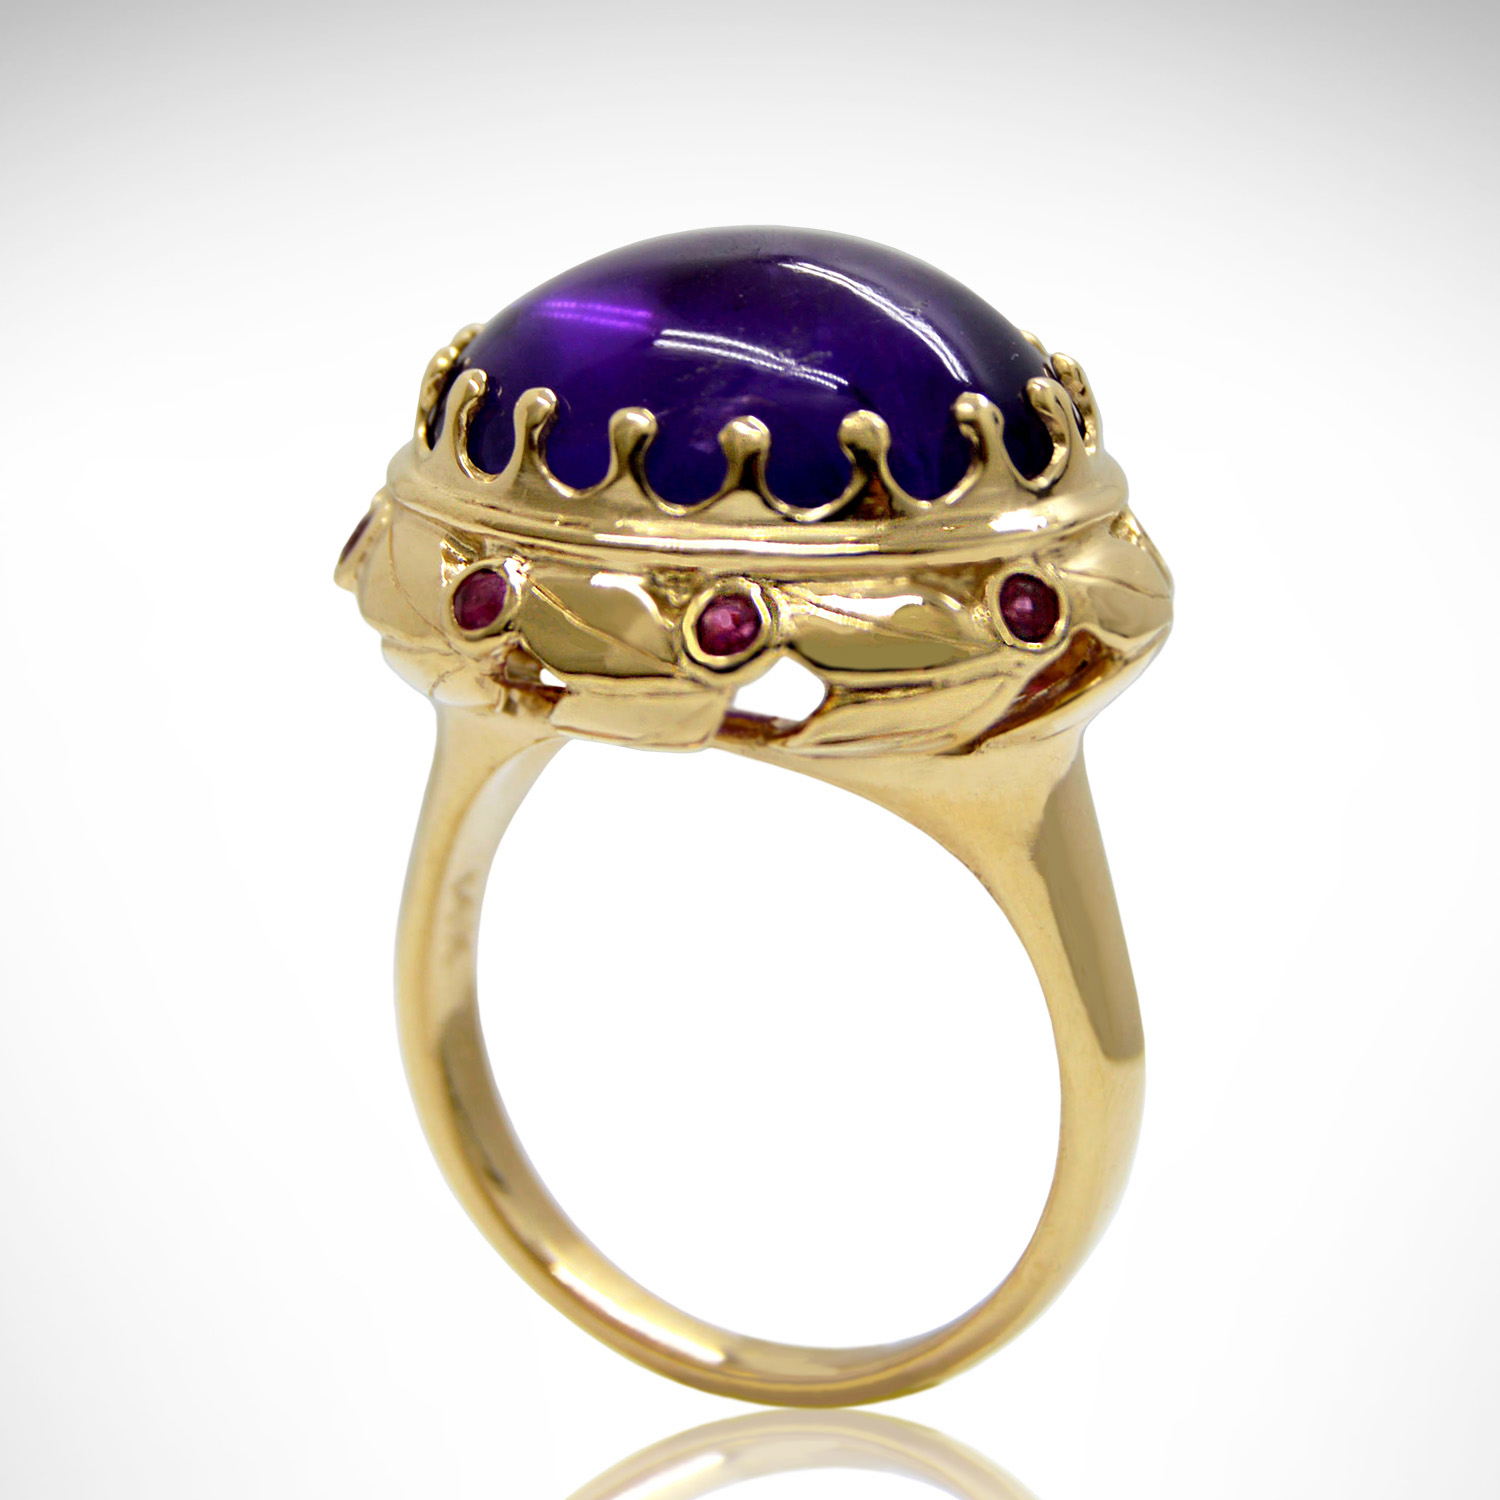 14k yellow gold ring with cabochon amethyst and rubies in an intricate leaf crown setting